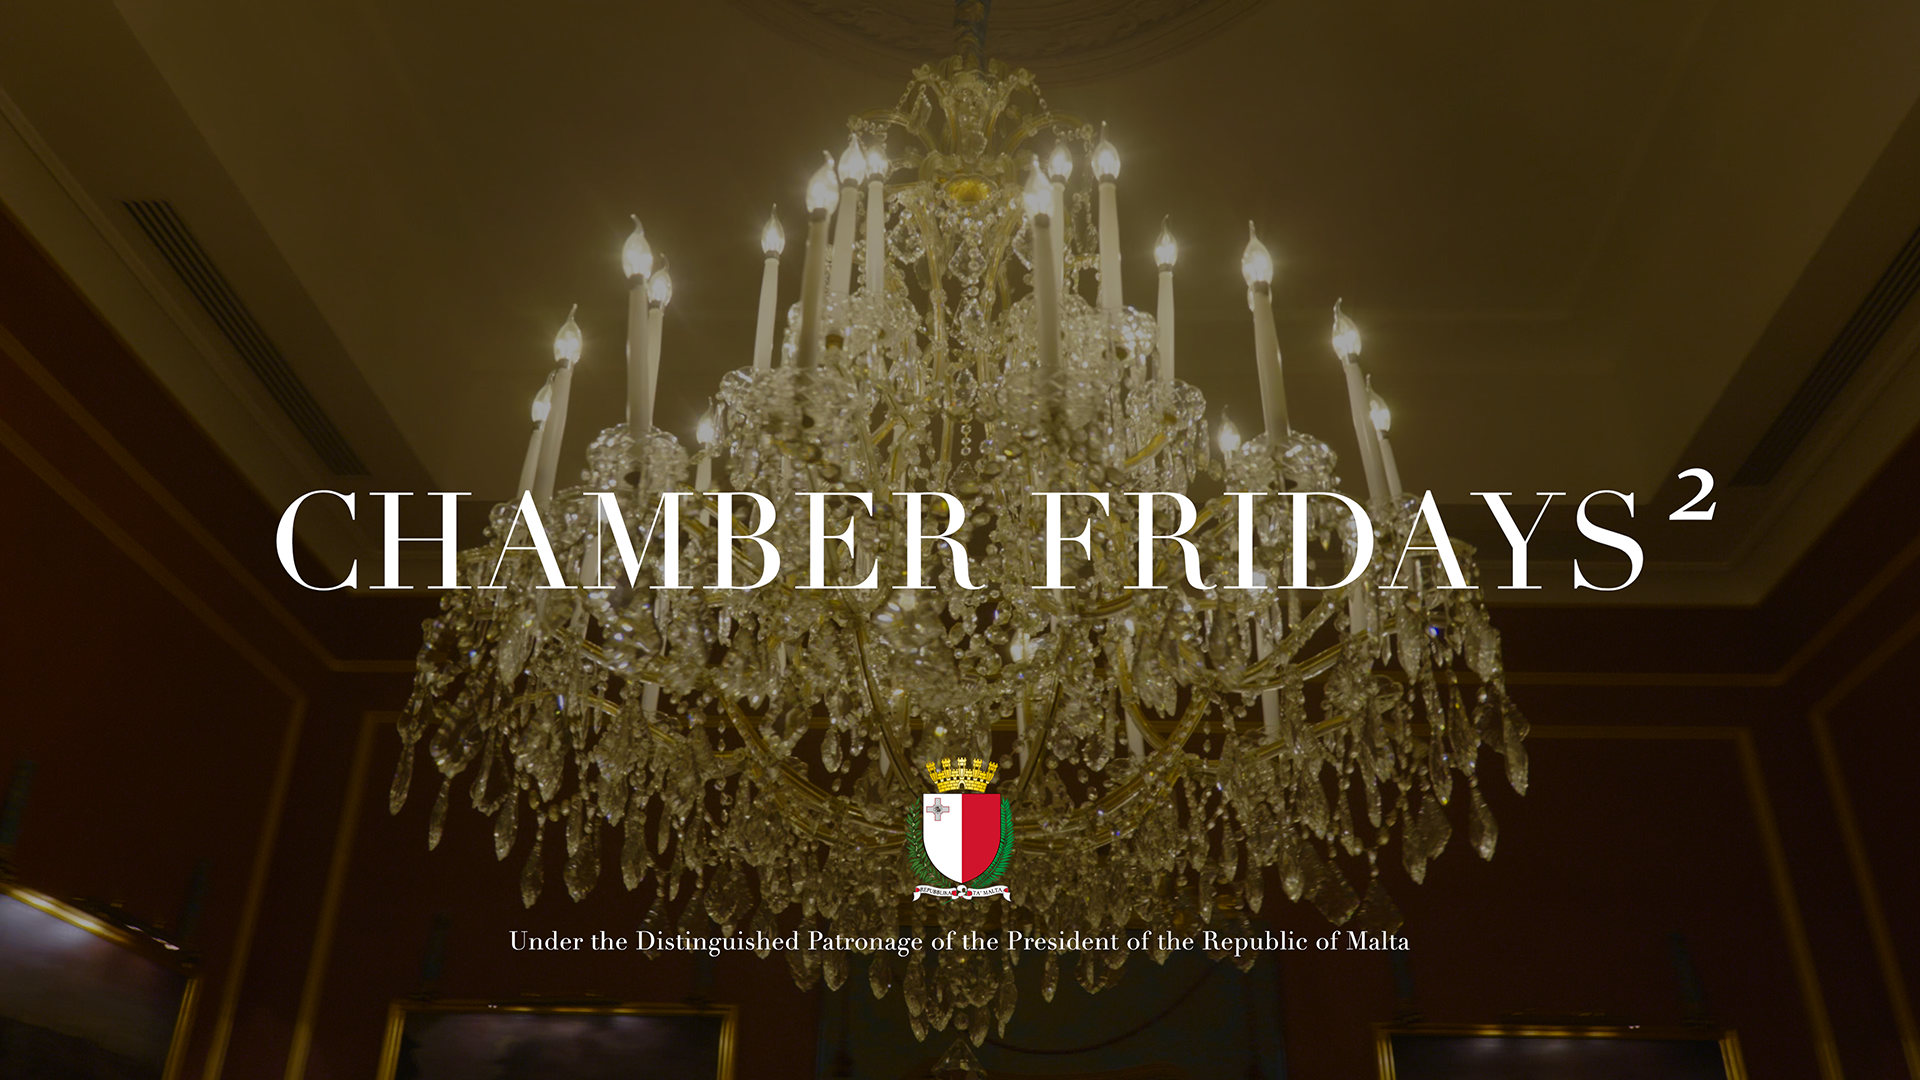 Chamber Fridays comes back again for its second edition